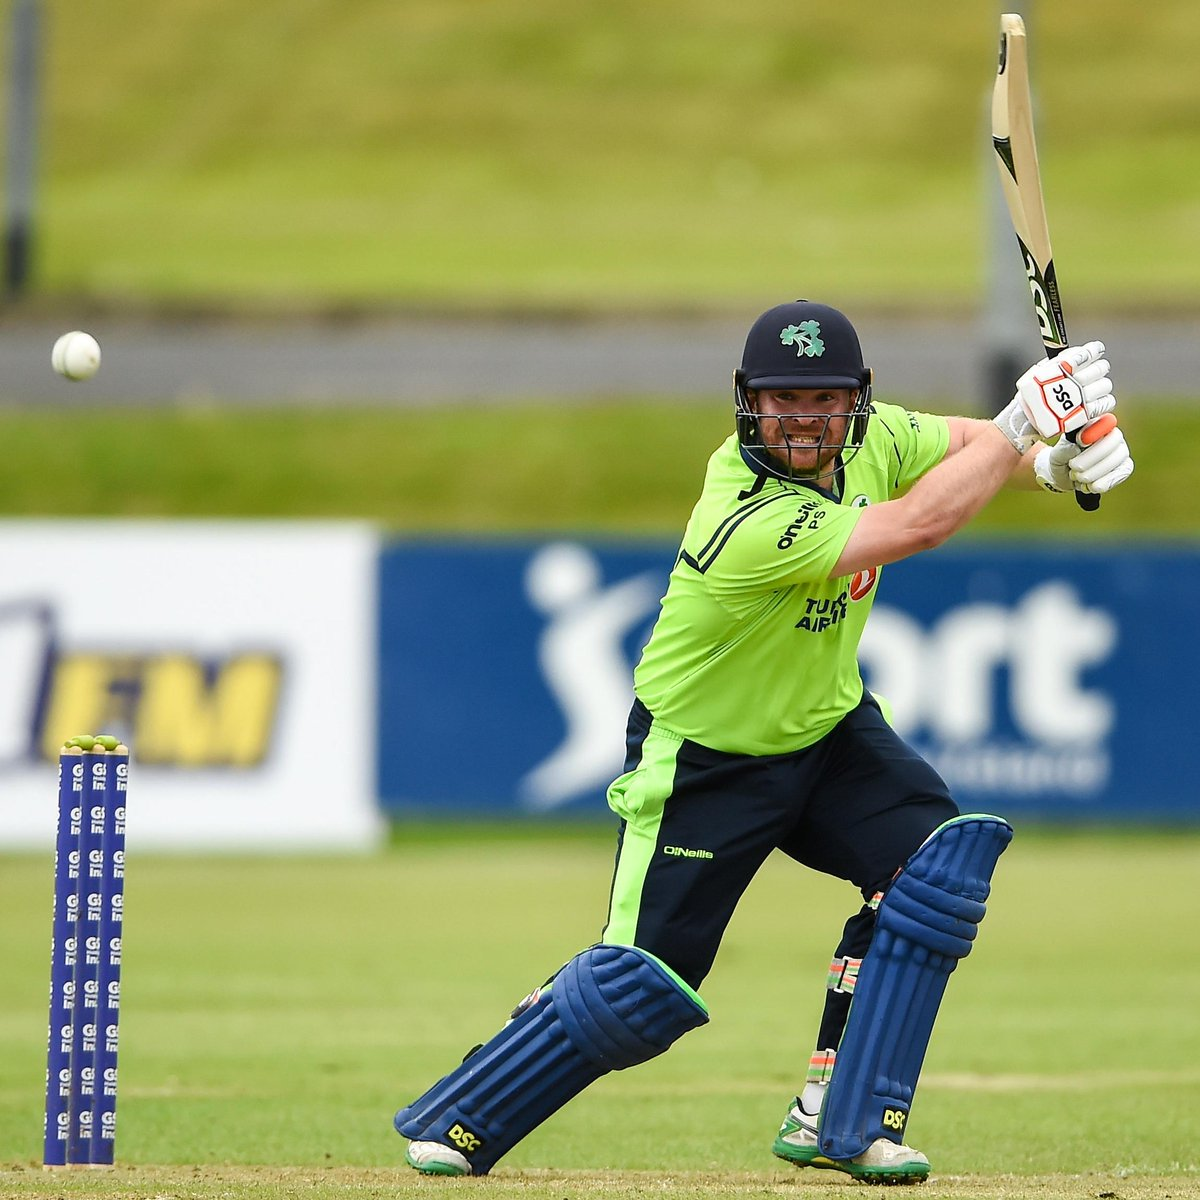 Cricket Ireland announce 2021 awards 🏅  🌟 Paul Stirling – Men's Player of the Year and Men's Player of the Decade 🌟 Kim Garth – Women's Player of the Decade  A big congratulations to the winners!